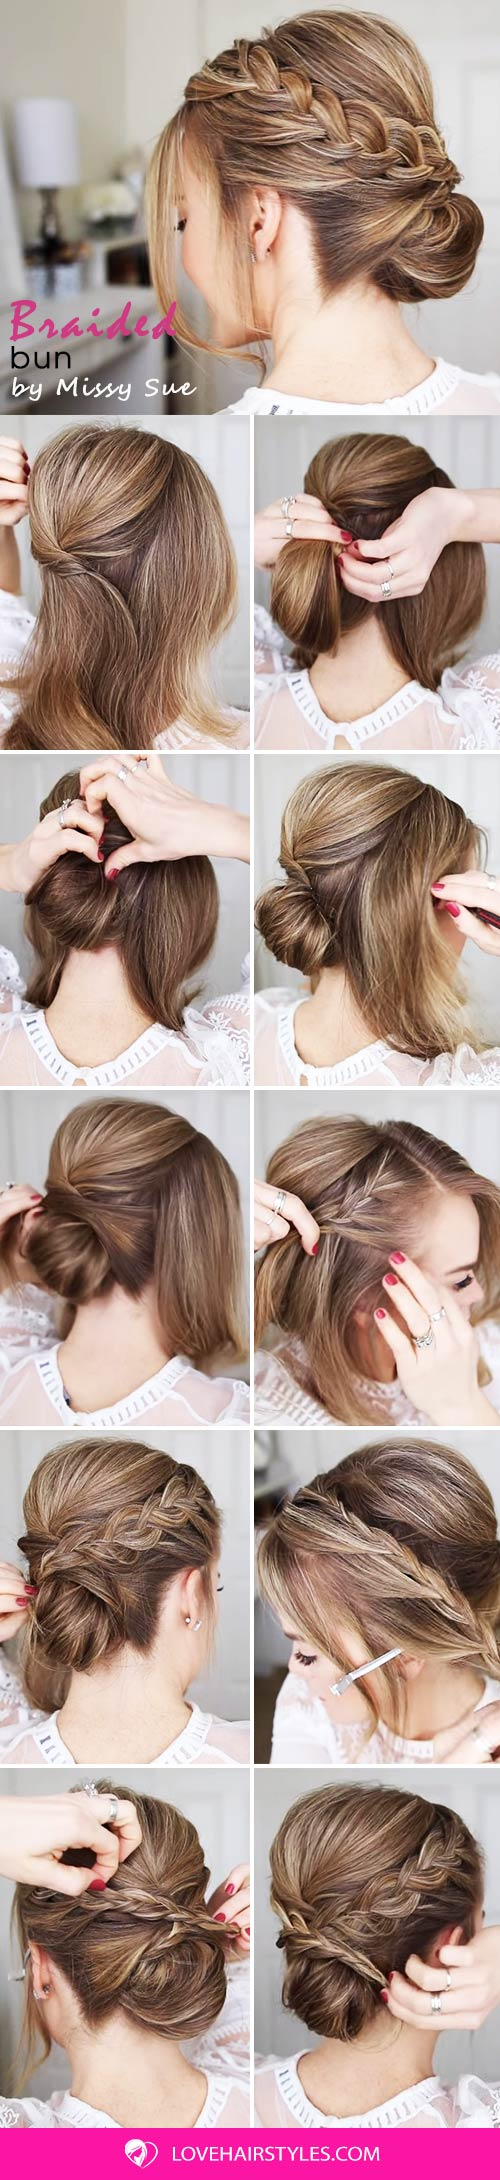 How To: Double Braid Wrapped Roll Bun #updo #bun #braids #hairtutorials